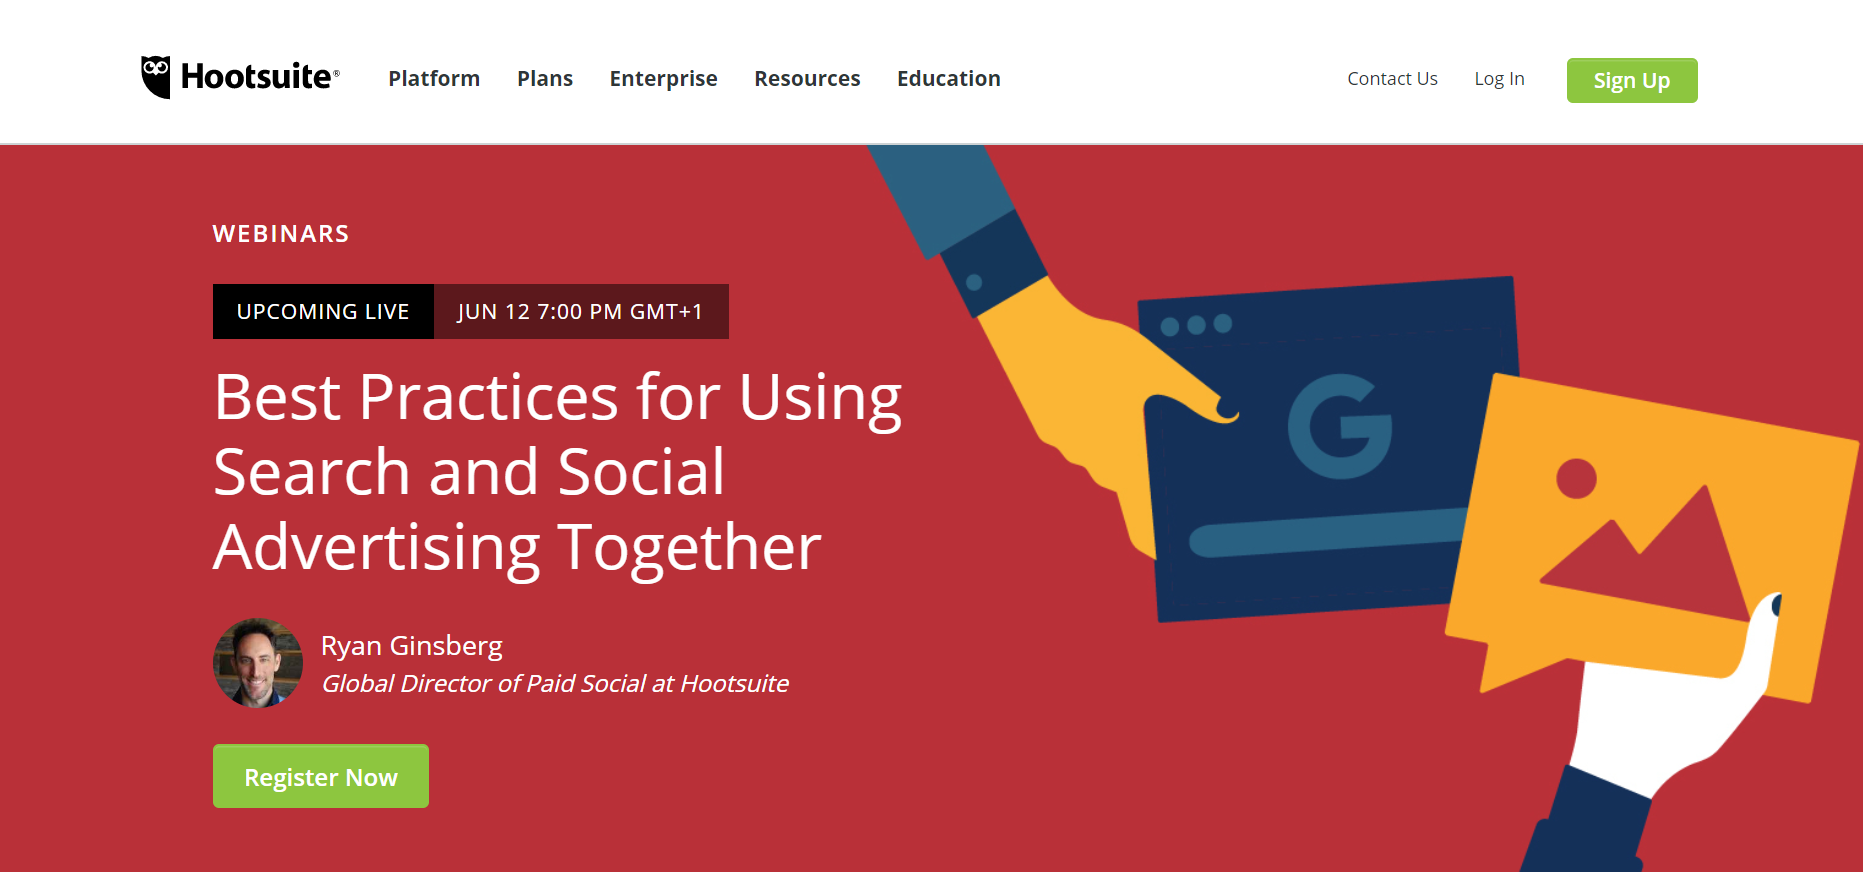 Employee Training Strategy for Remote Webinars Hootsuite Example - Helppier Blog